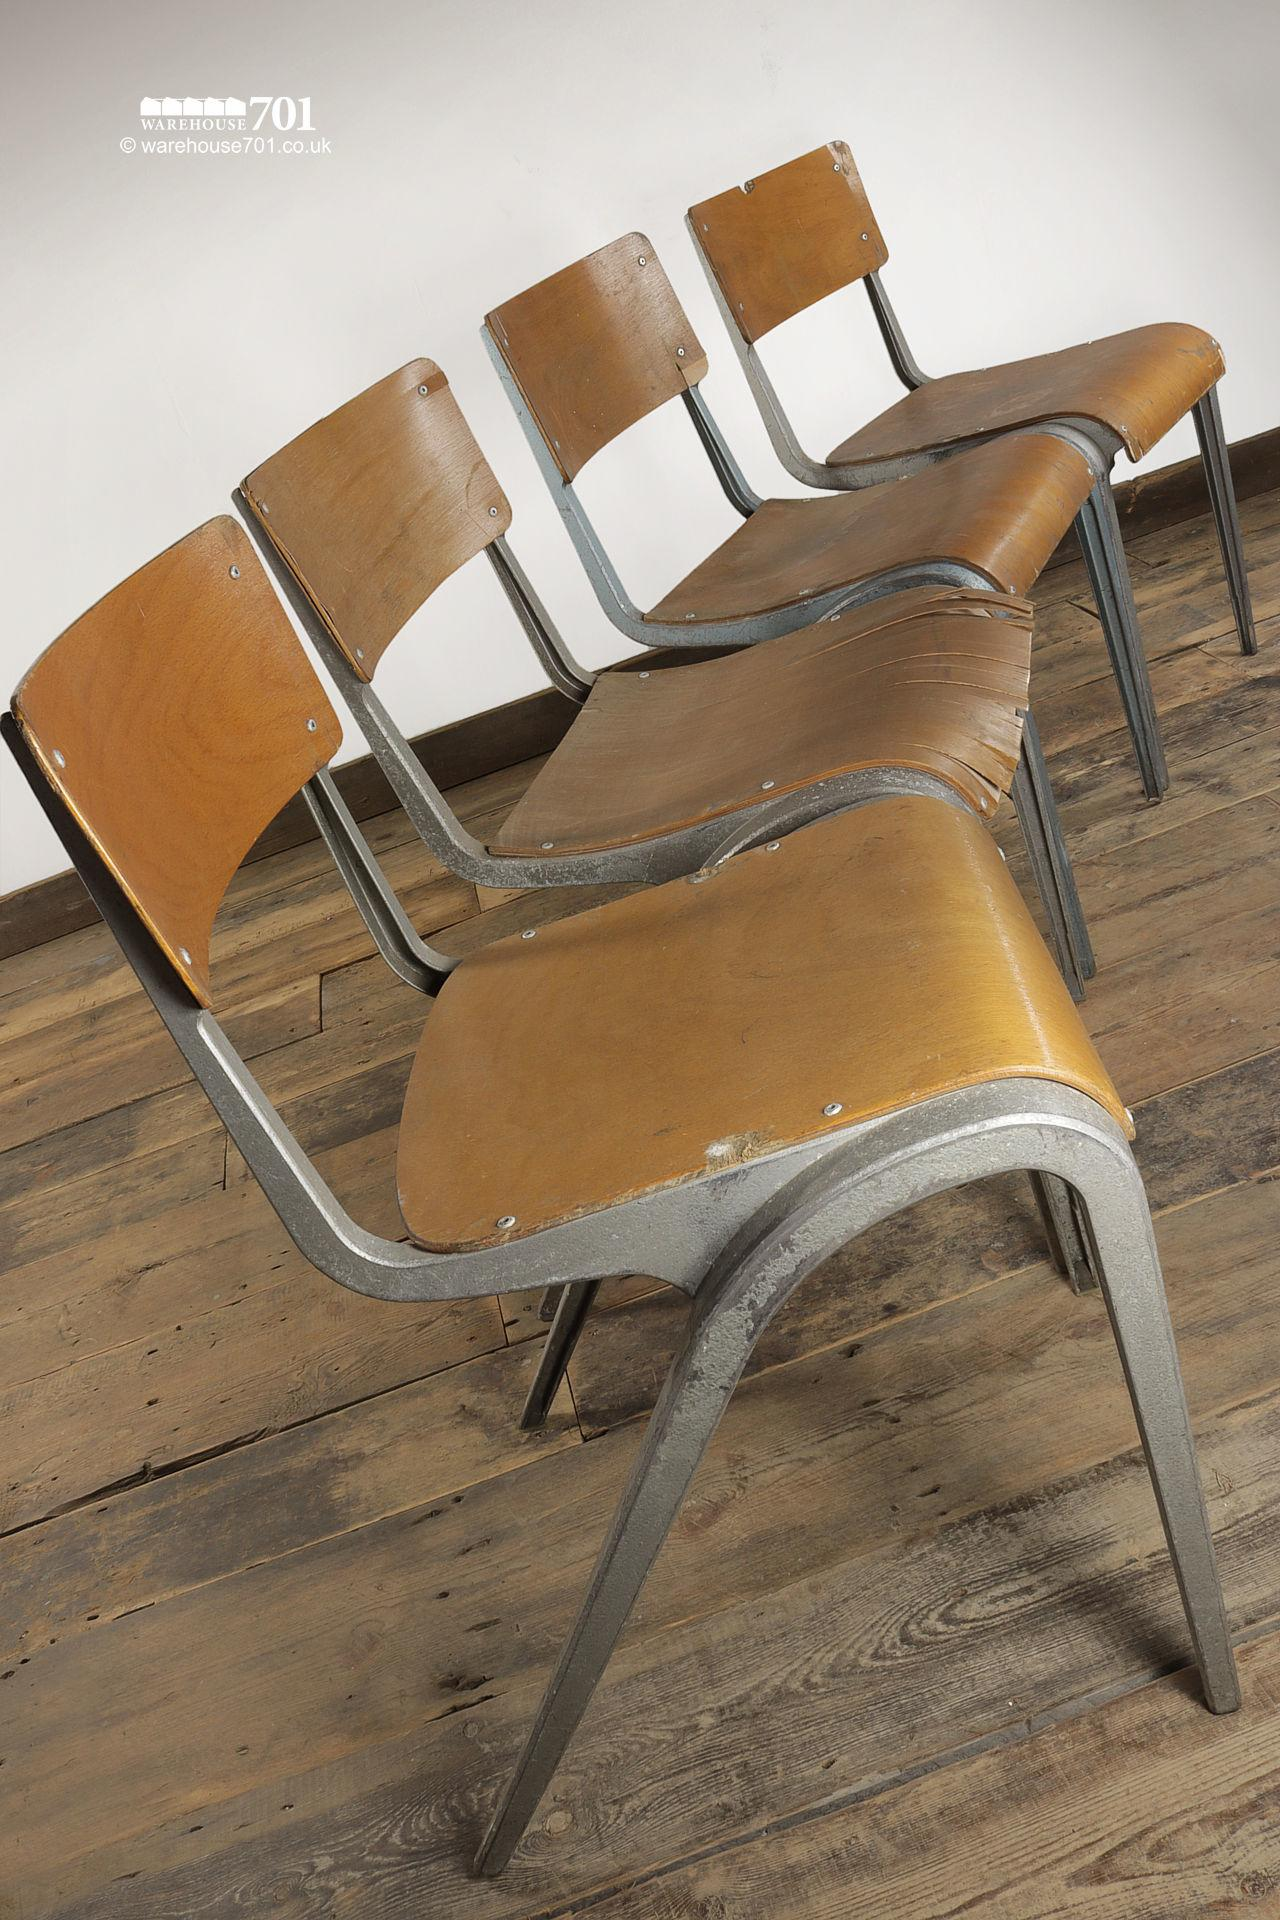 Vintage 1950s Esavian Alloy & Ply Stacking Chairs #4